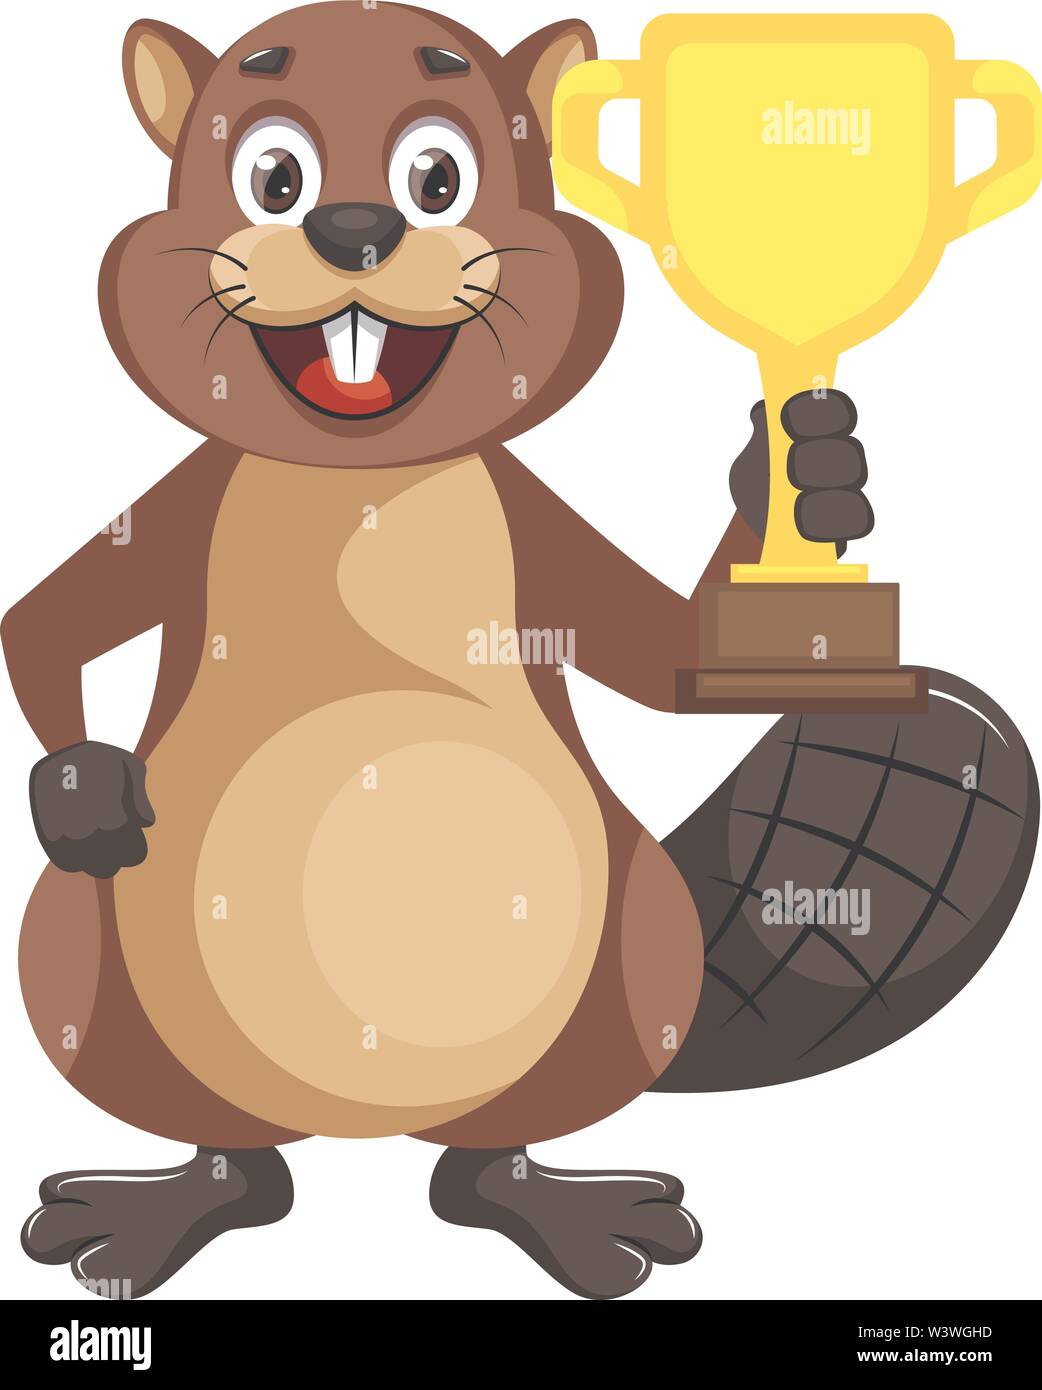 Beaver with trophy, illustration, vector on white background. - Stock Image